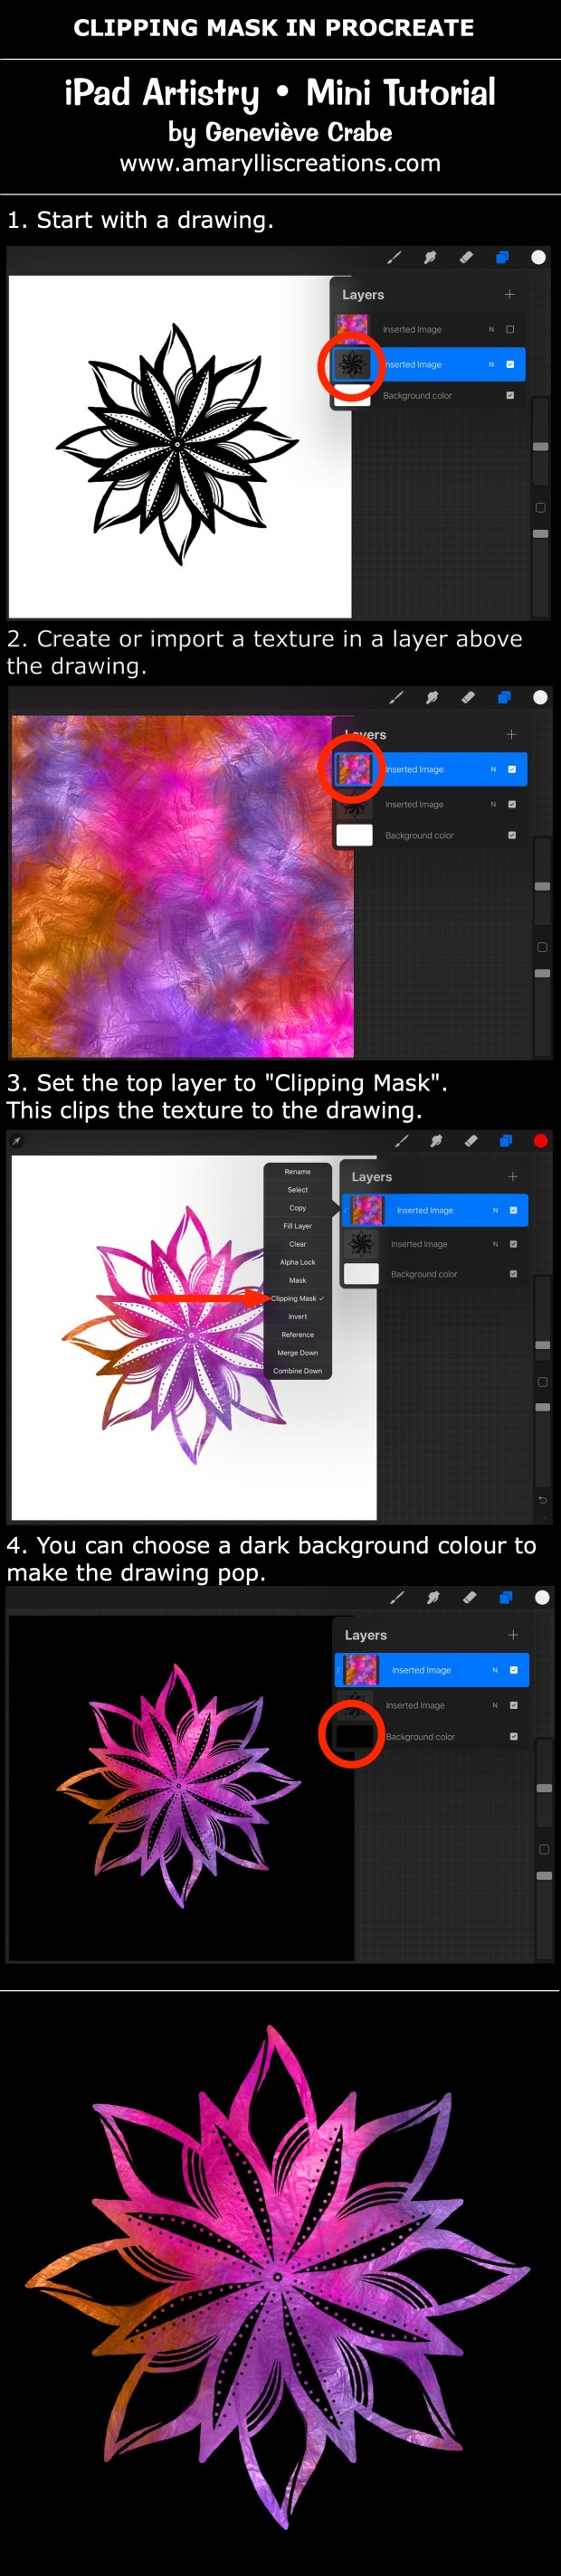 Mini tutorial: Clipping Mask in Procreate on iPad